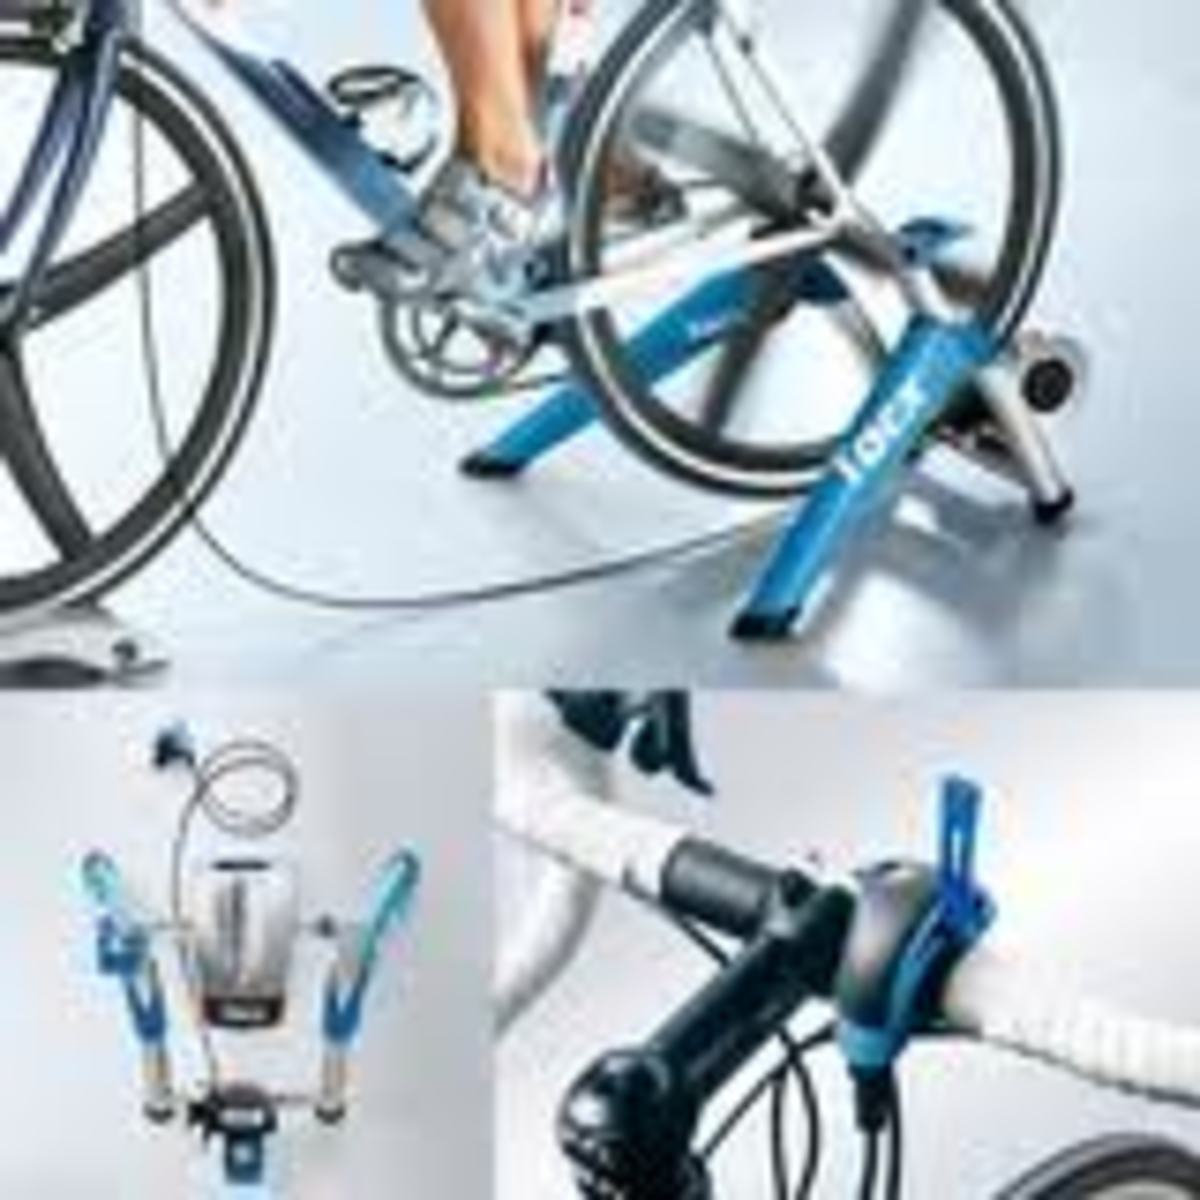 Turbo trainer cycle tires. Do you need a specific tyre for indoor cycling training?